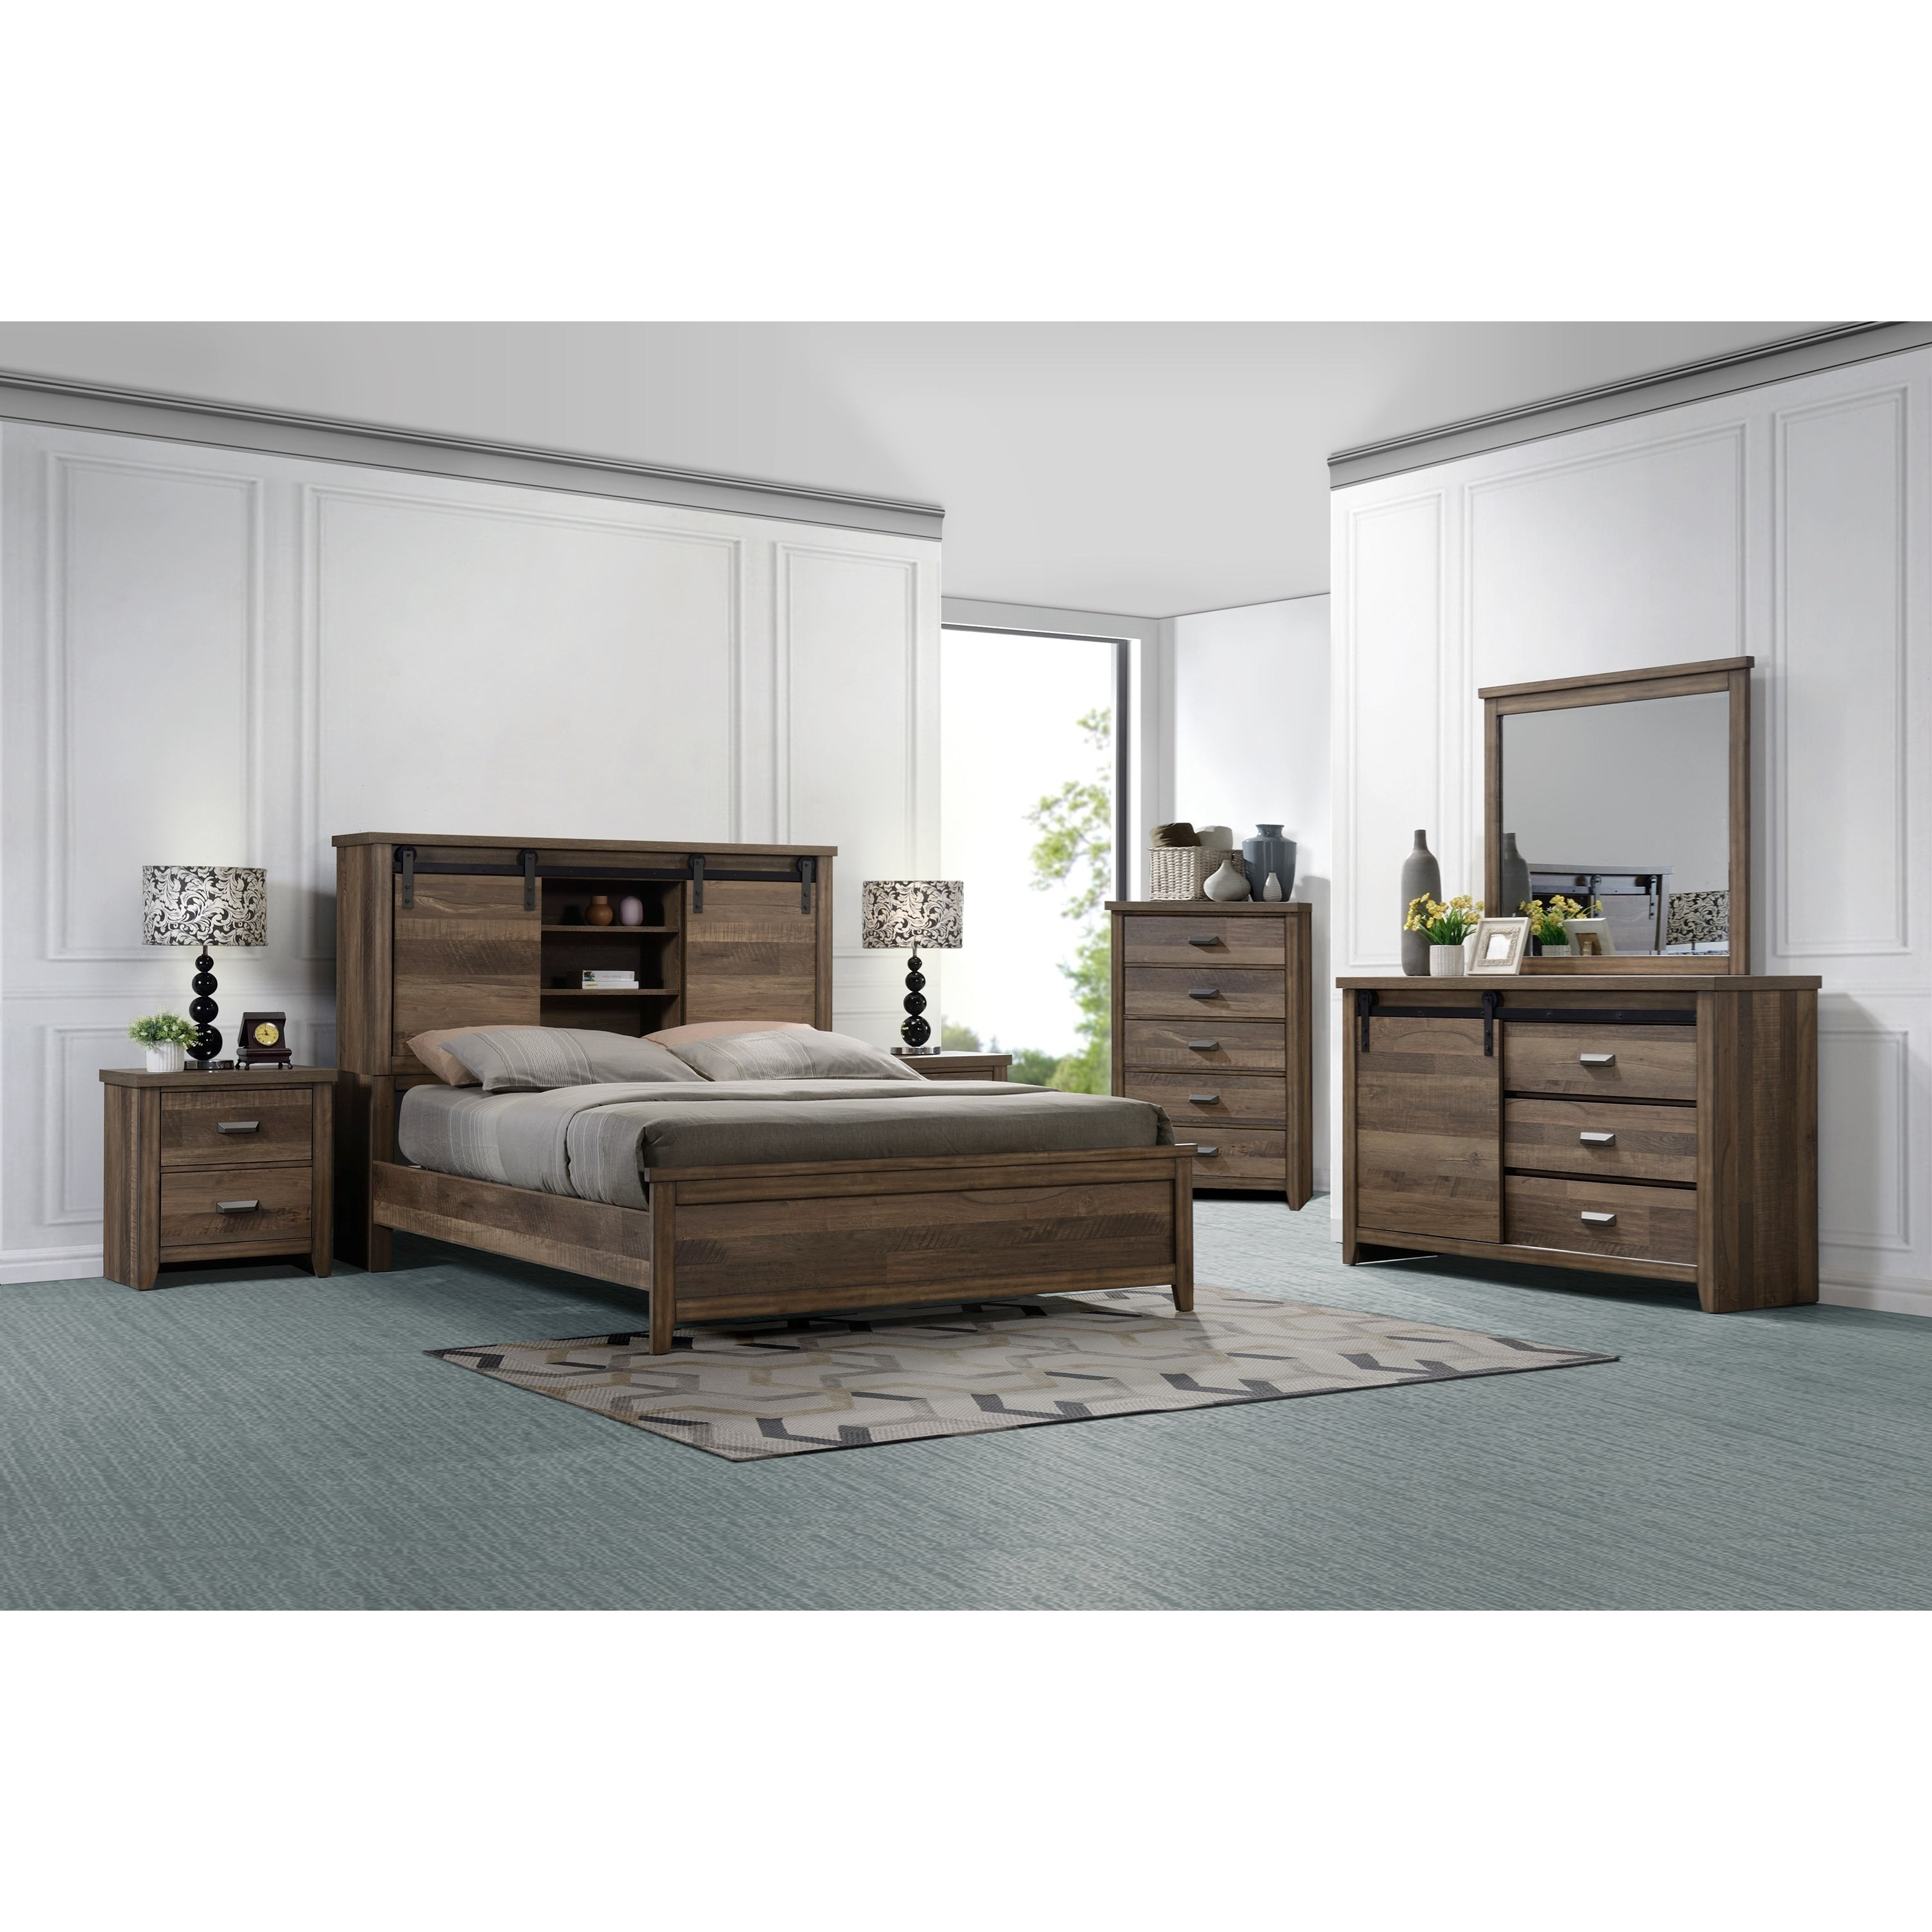 Calhoun Queen Bedroom Group by Crown Mark at Northeast Factory Direct